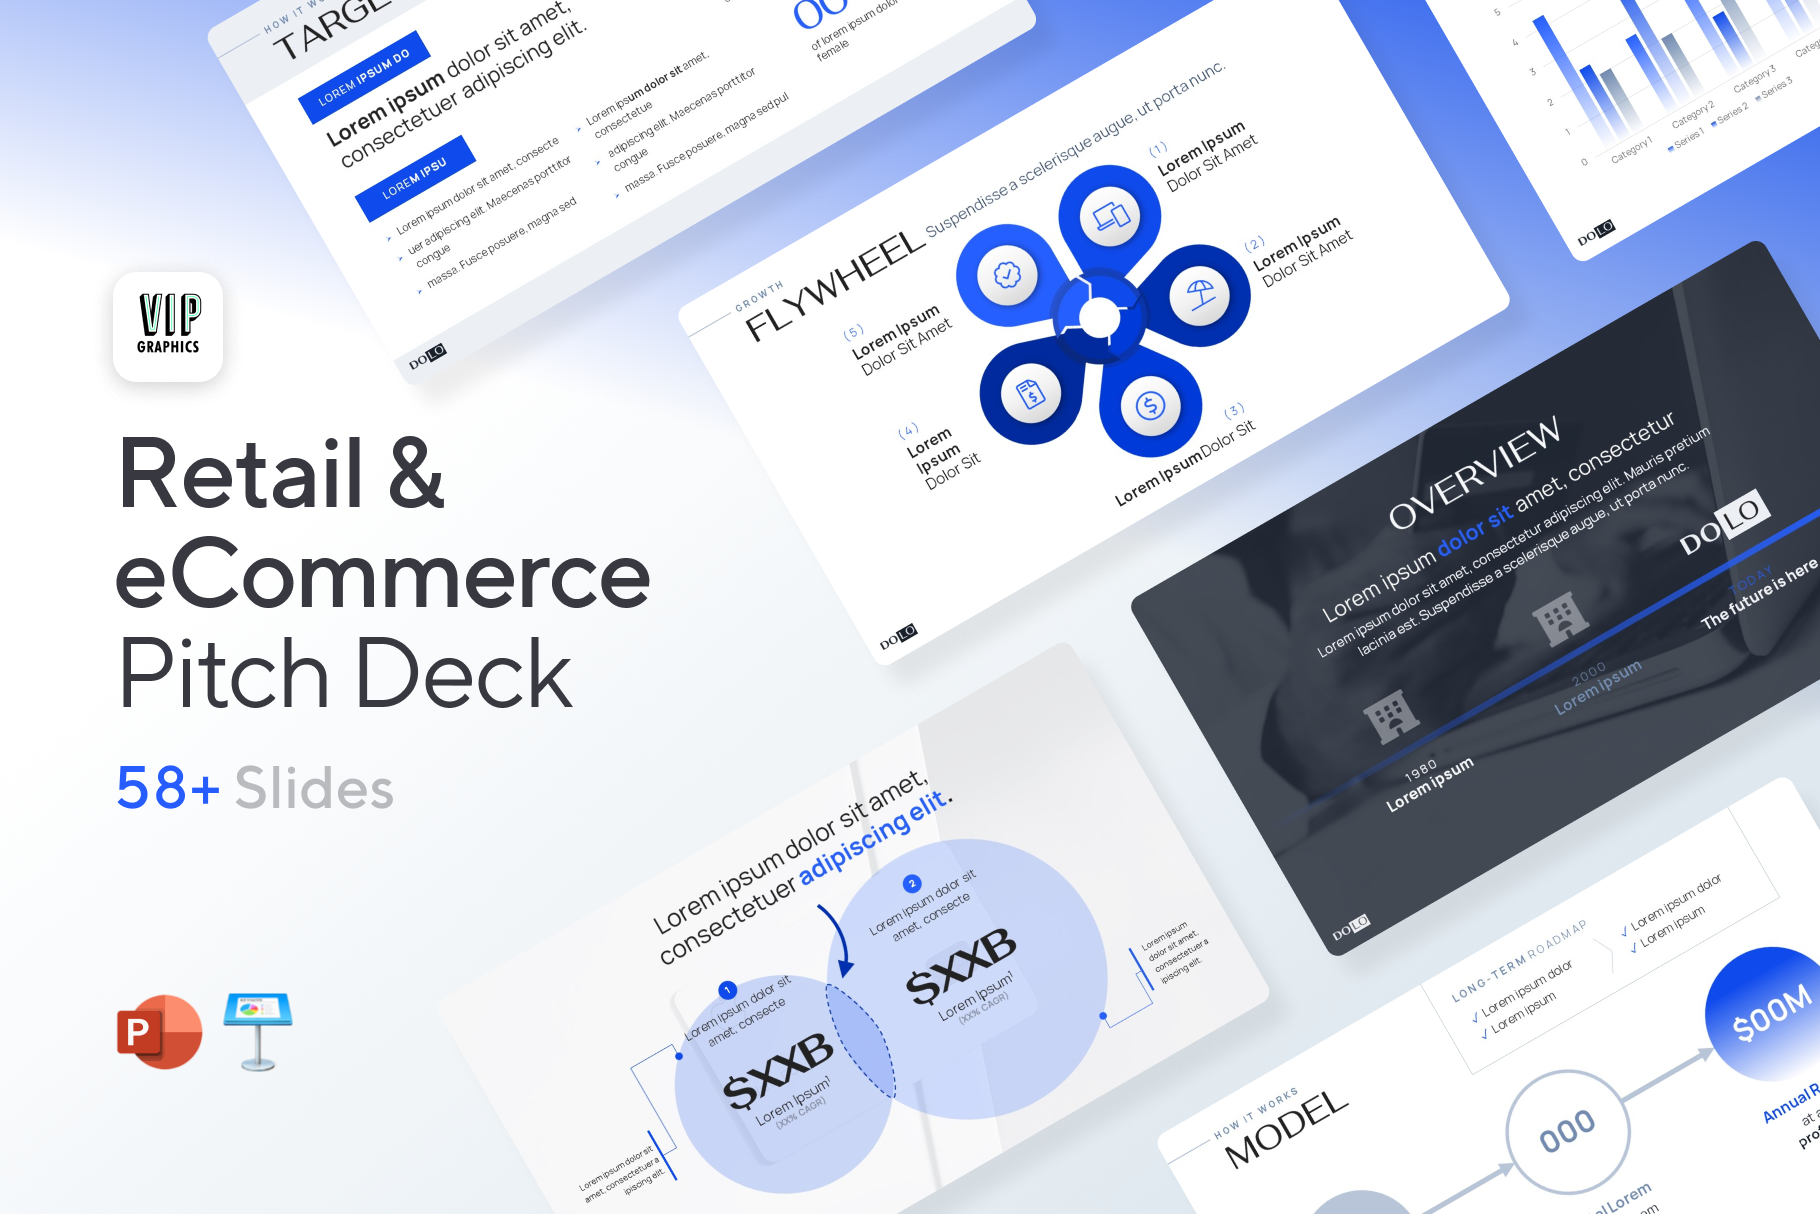 Retail & eCommerce Pitch Deck